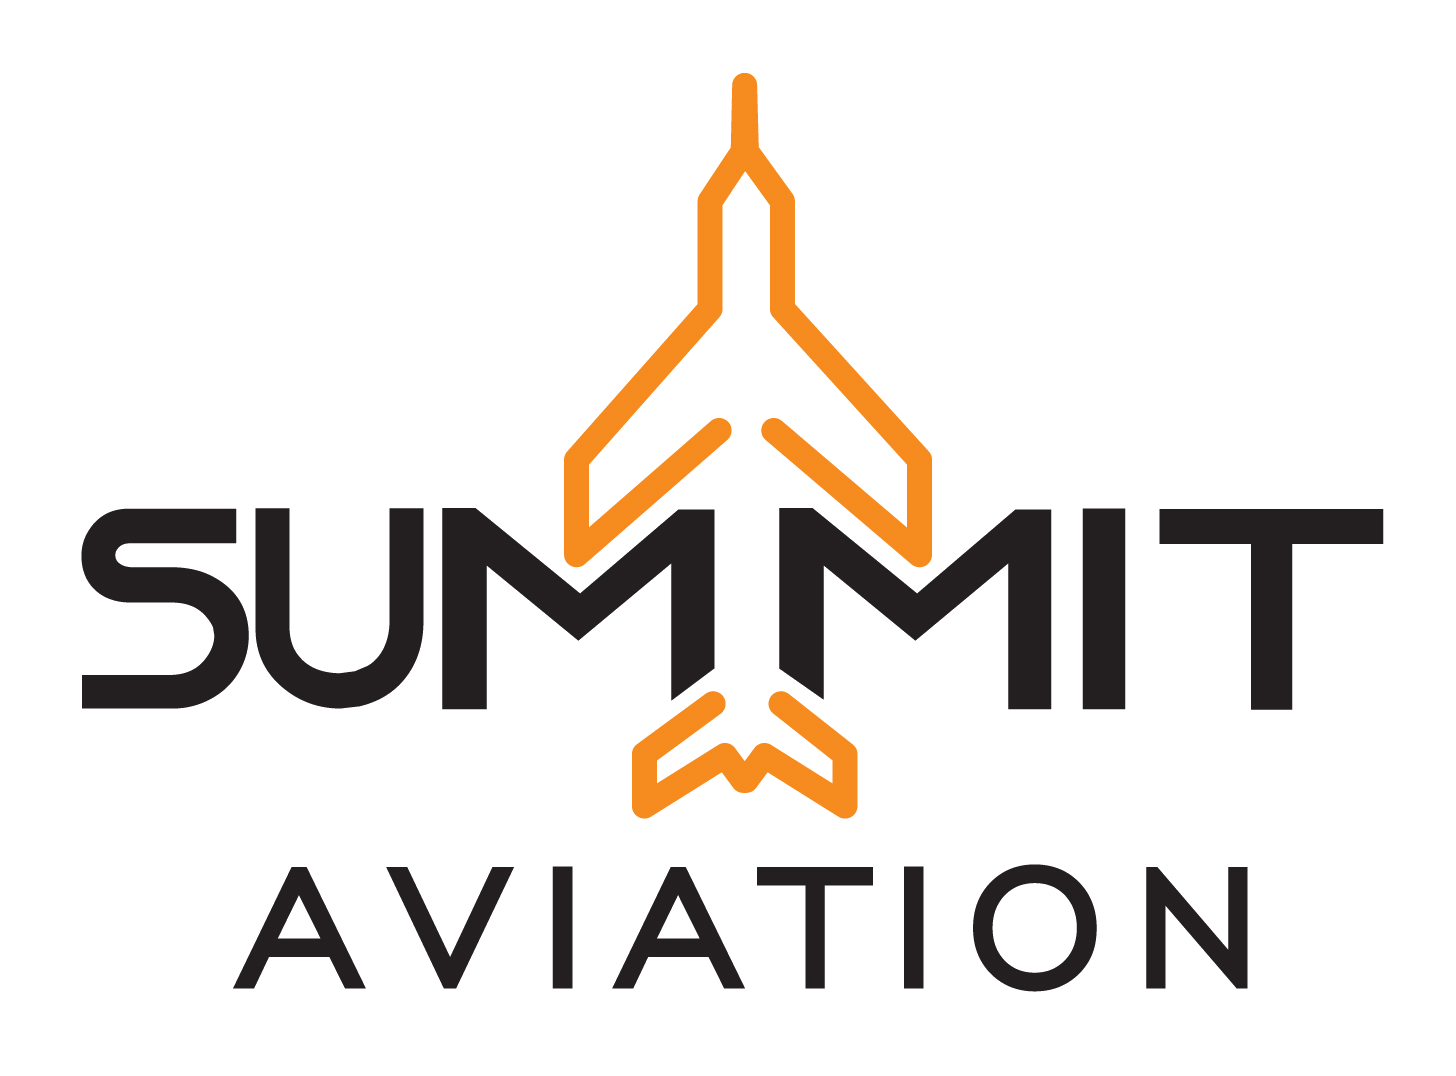 Summit Aviation